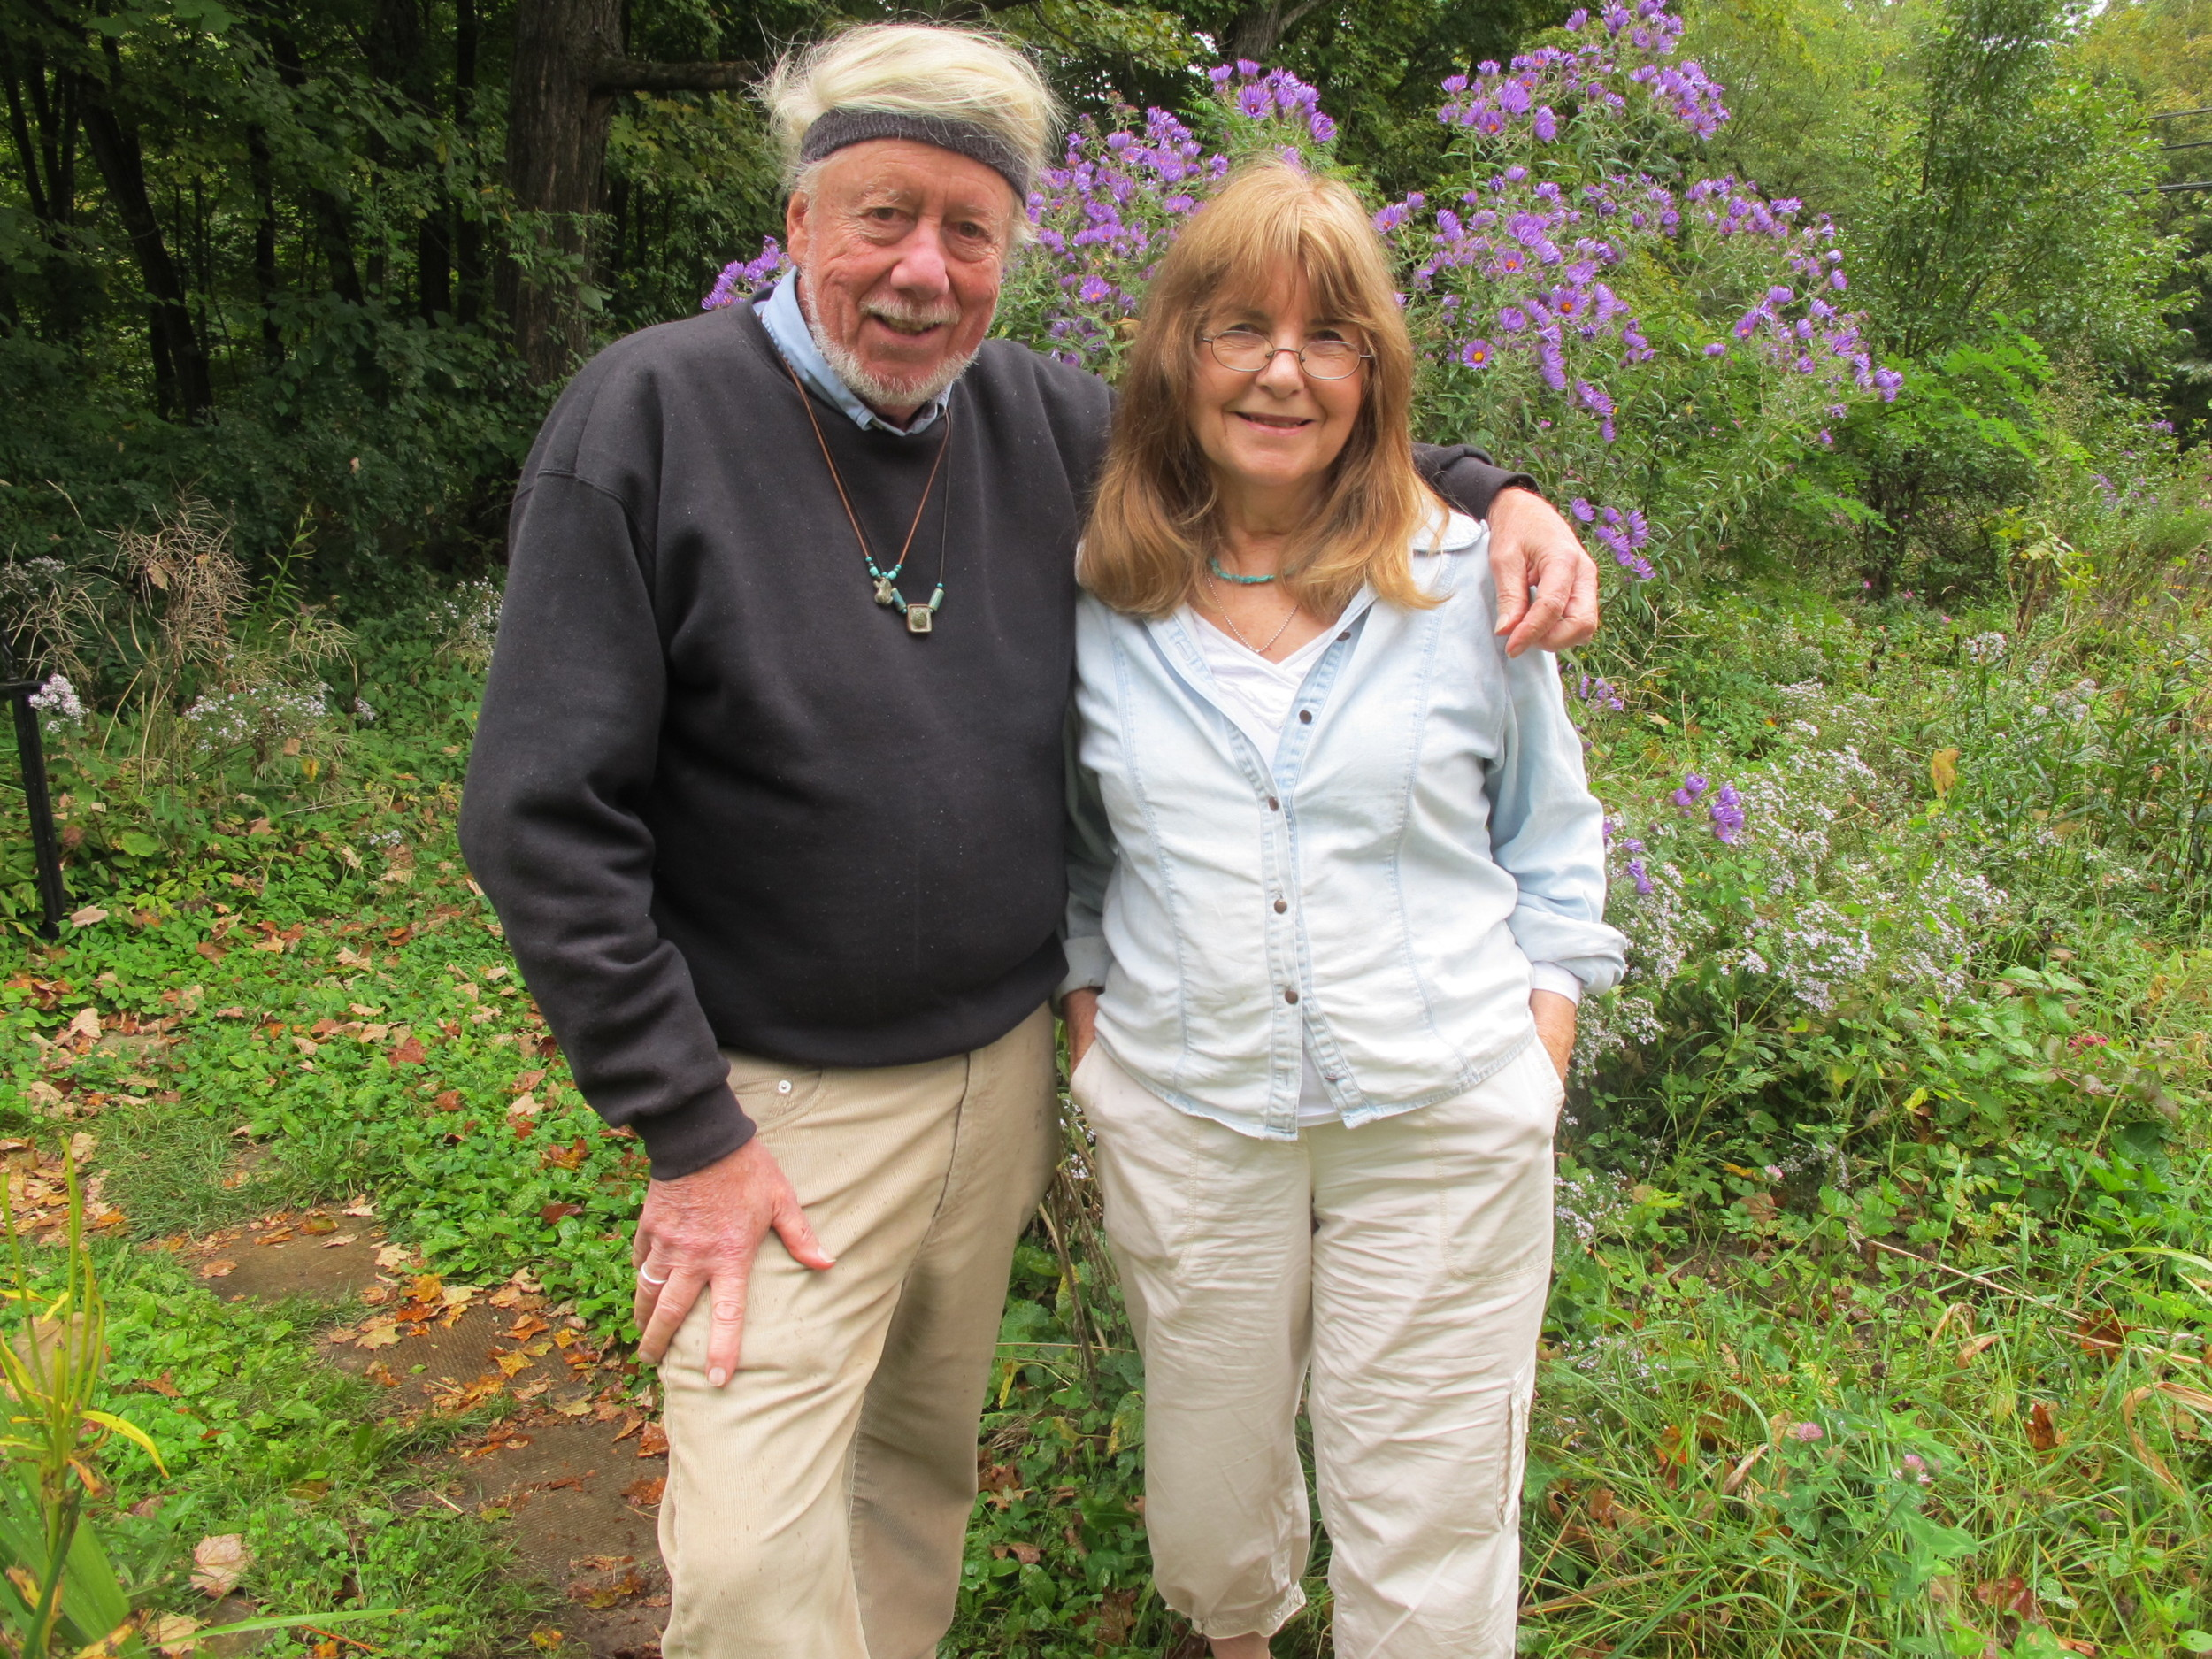 We talked with David and Laurette talked about art, ecology, turtles, David's McArthur fellowship and much more, including the beautiful wild asters growing in their dooryard.